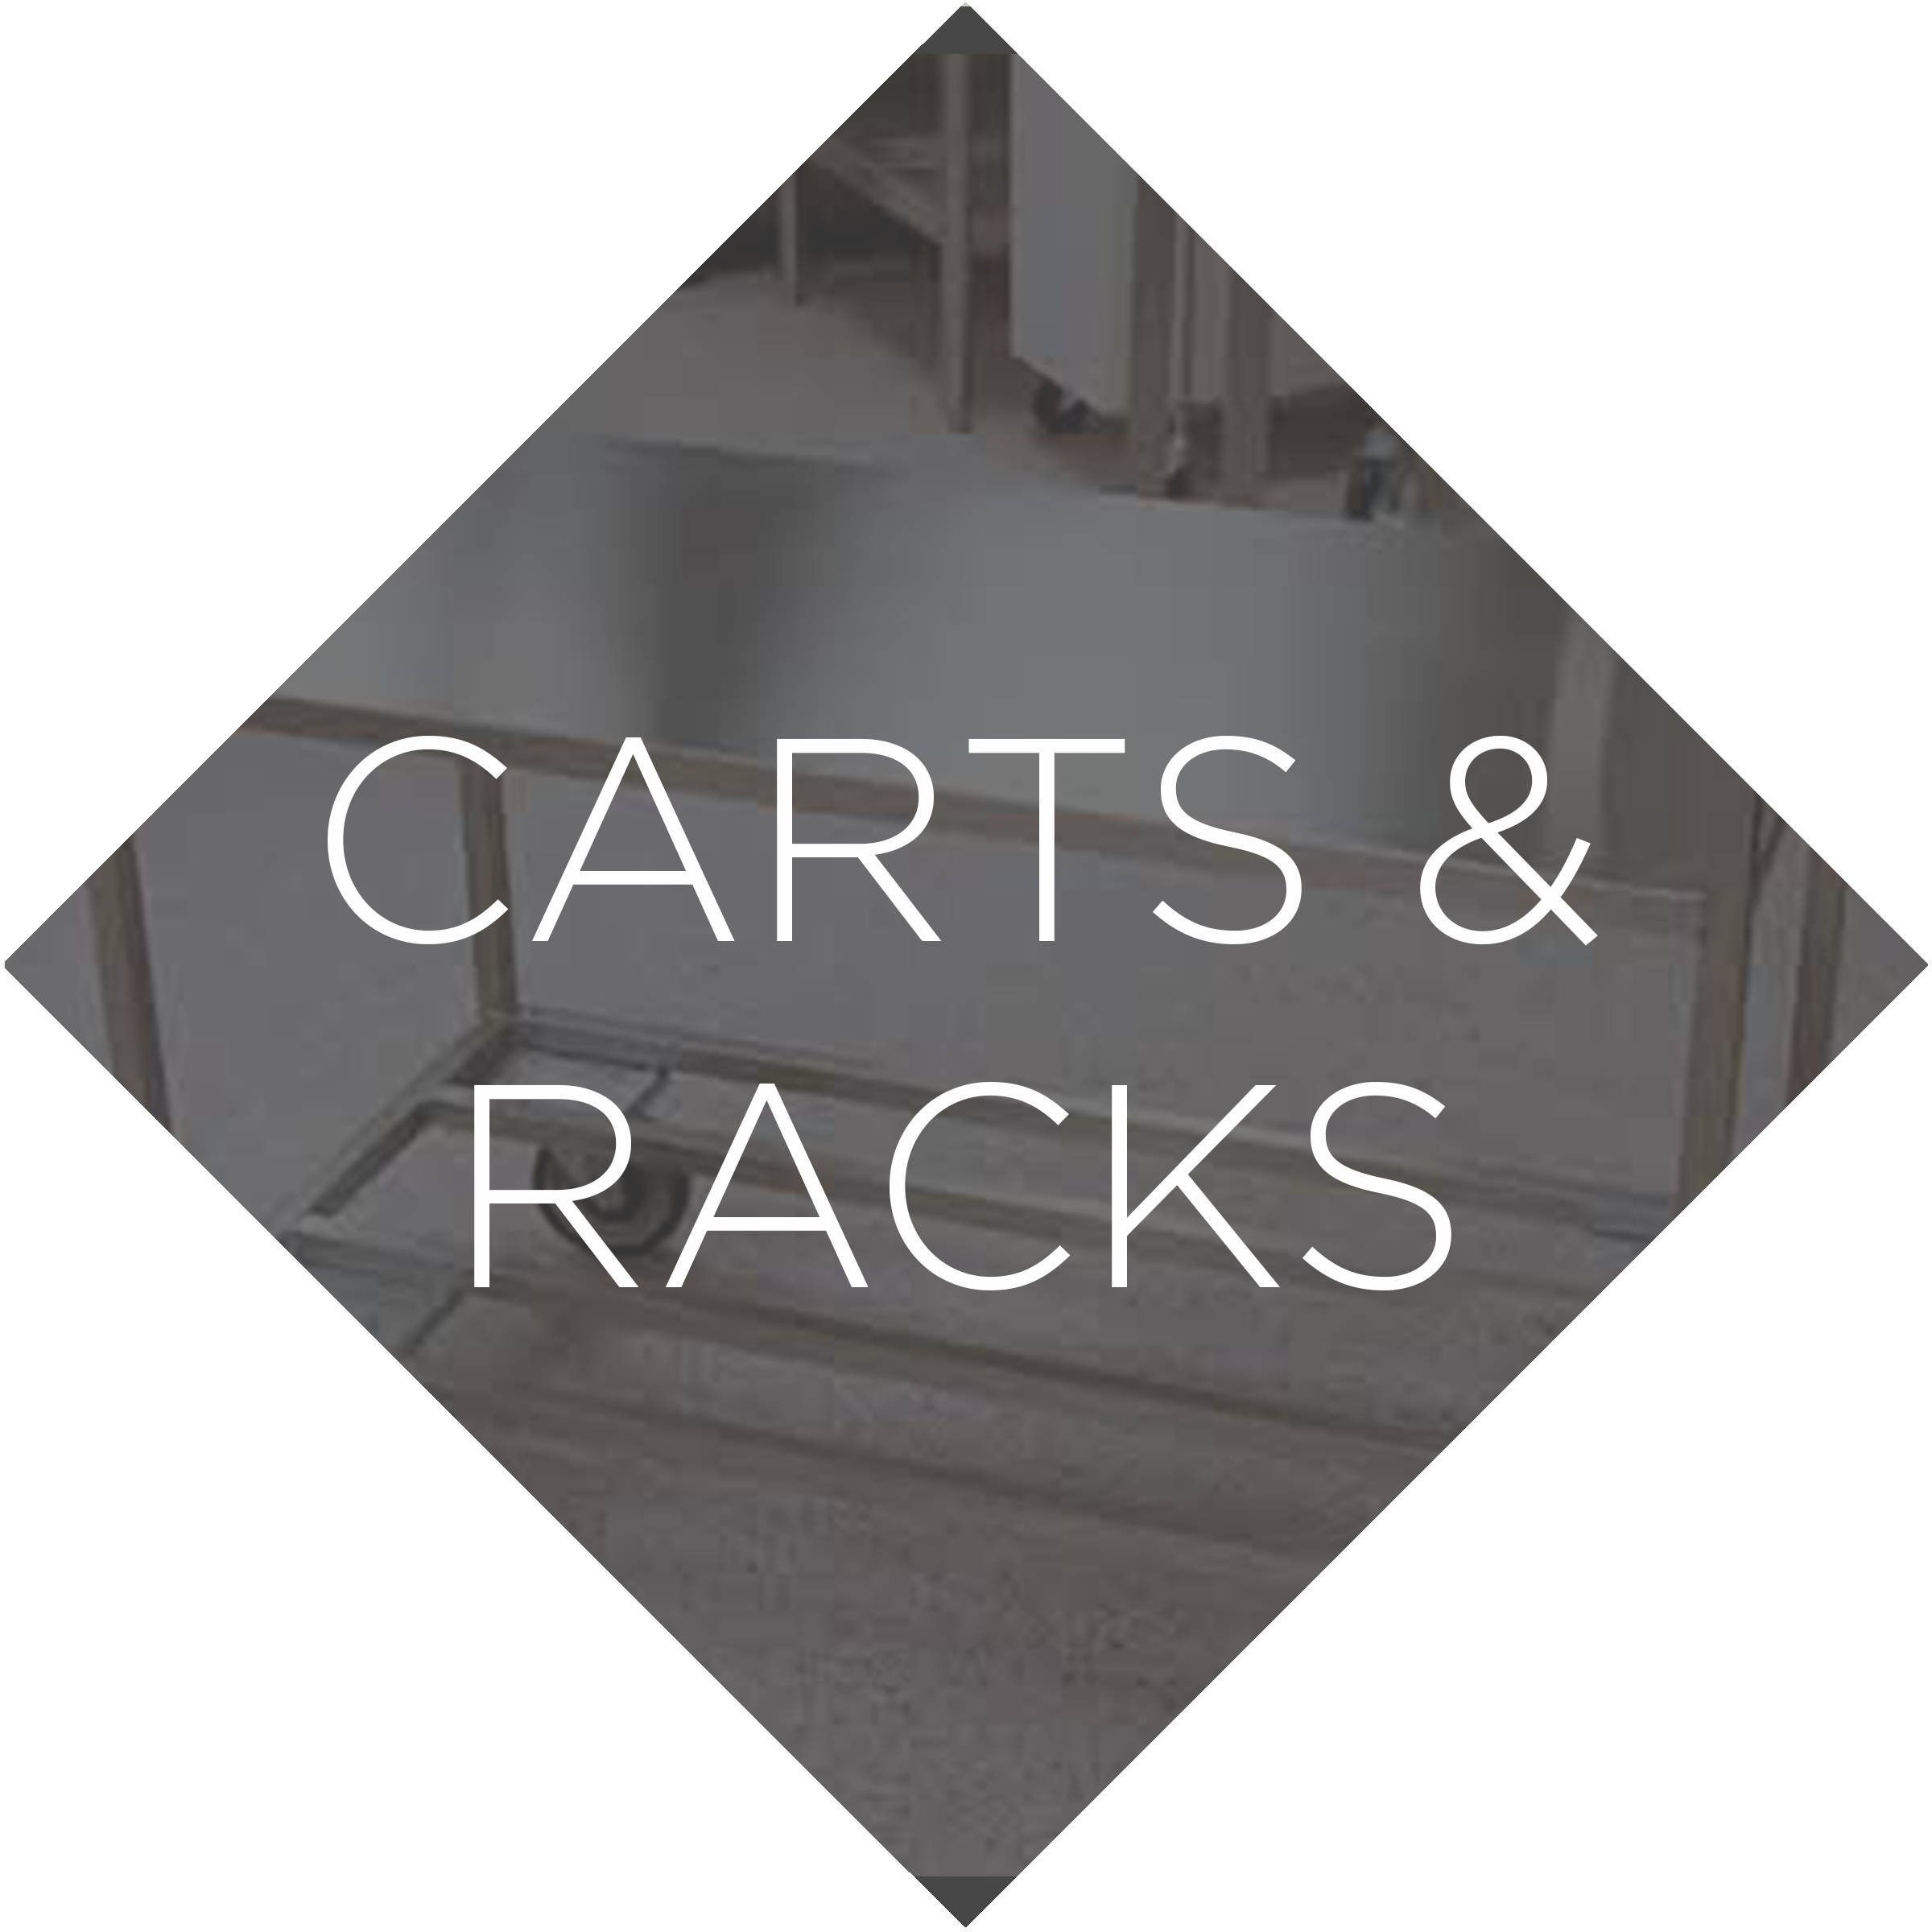 Carts and Racks.png